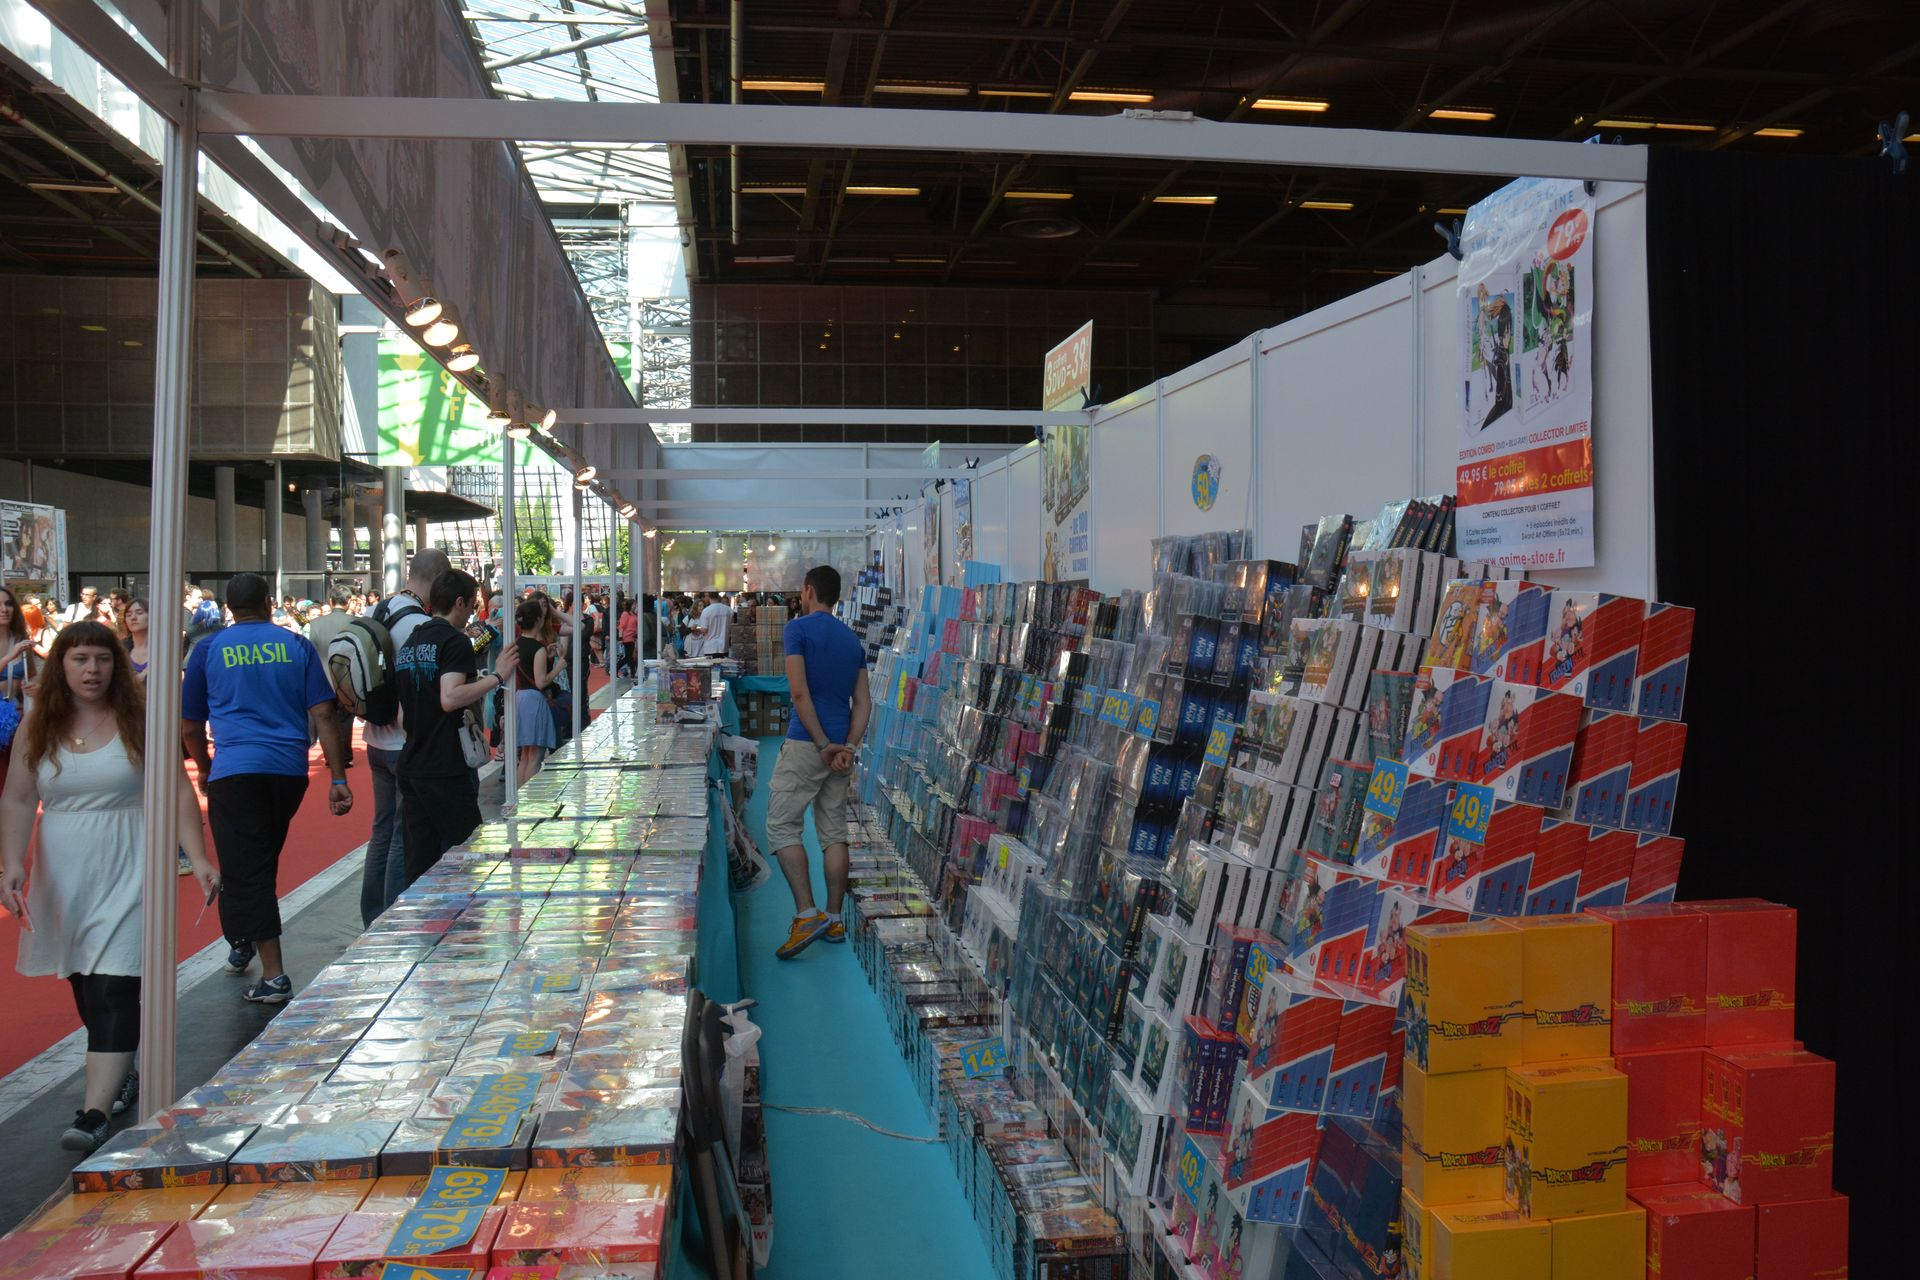 Japan Expo Les Stands : Japan expo cosplay et stands les photos page